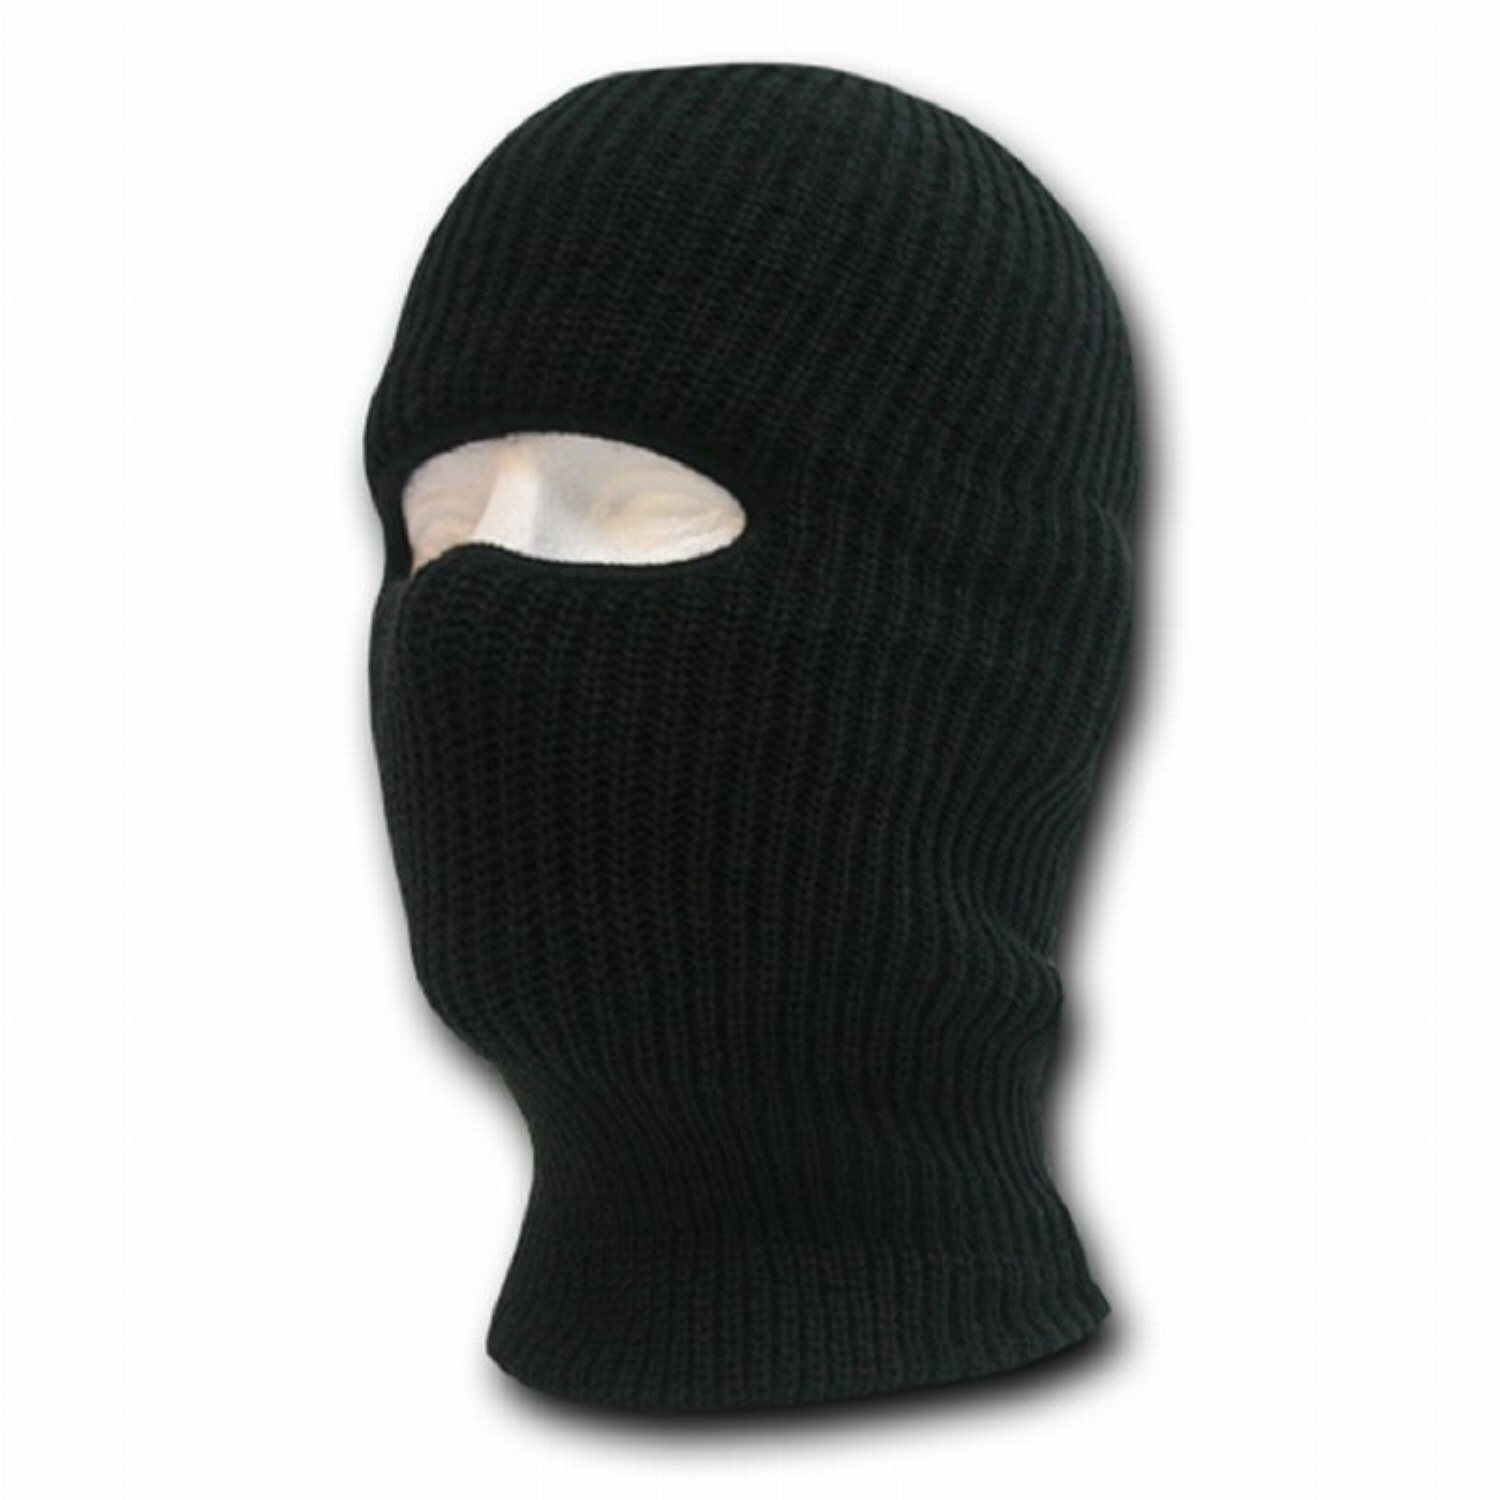 BLACK NINJA TACTICAL MASK SKI CAP FACE PROTECTOR ONE HOLE